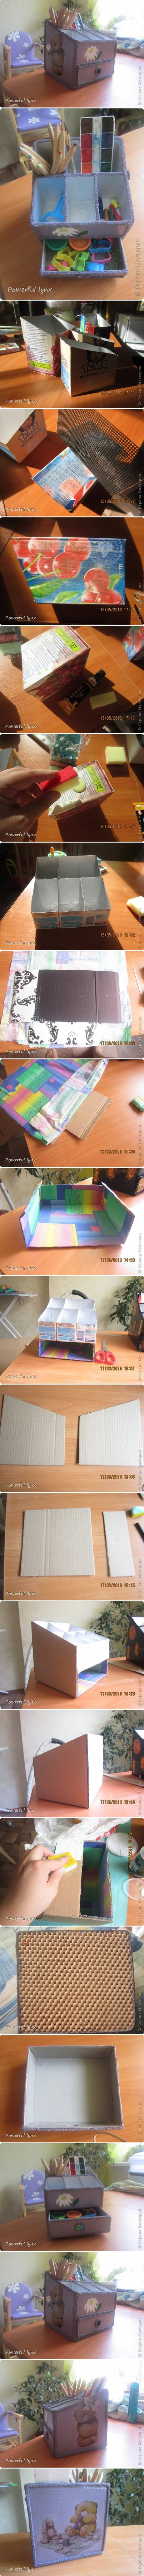 How to make Beautiful Desk Organizer step by step DIY instructions